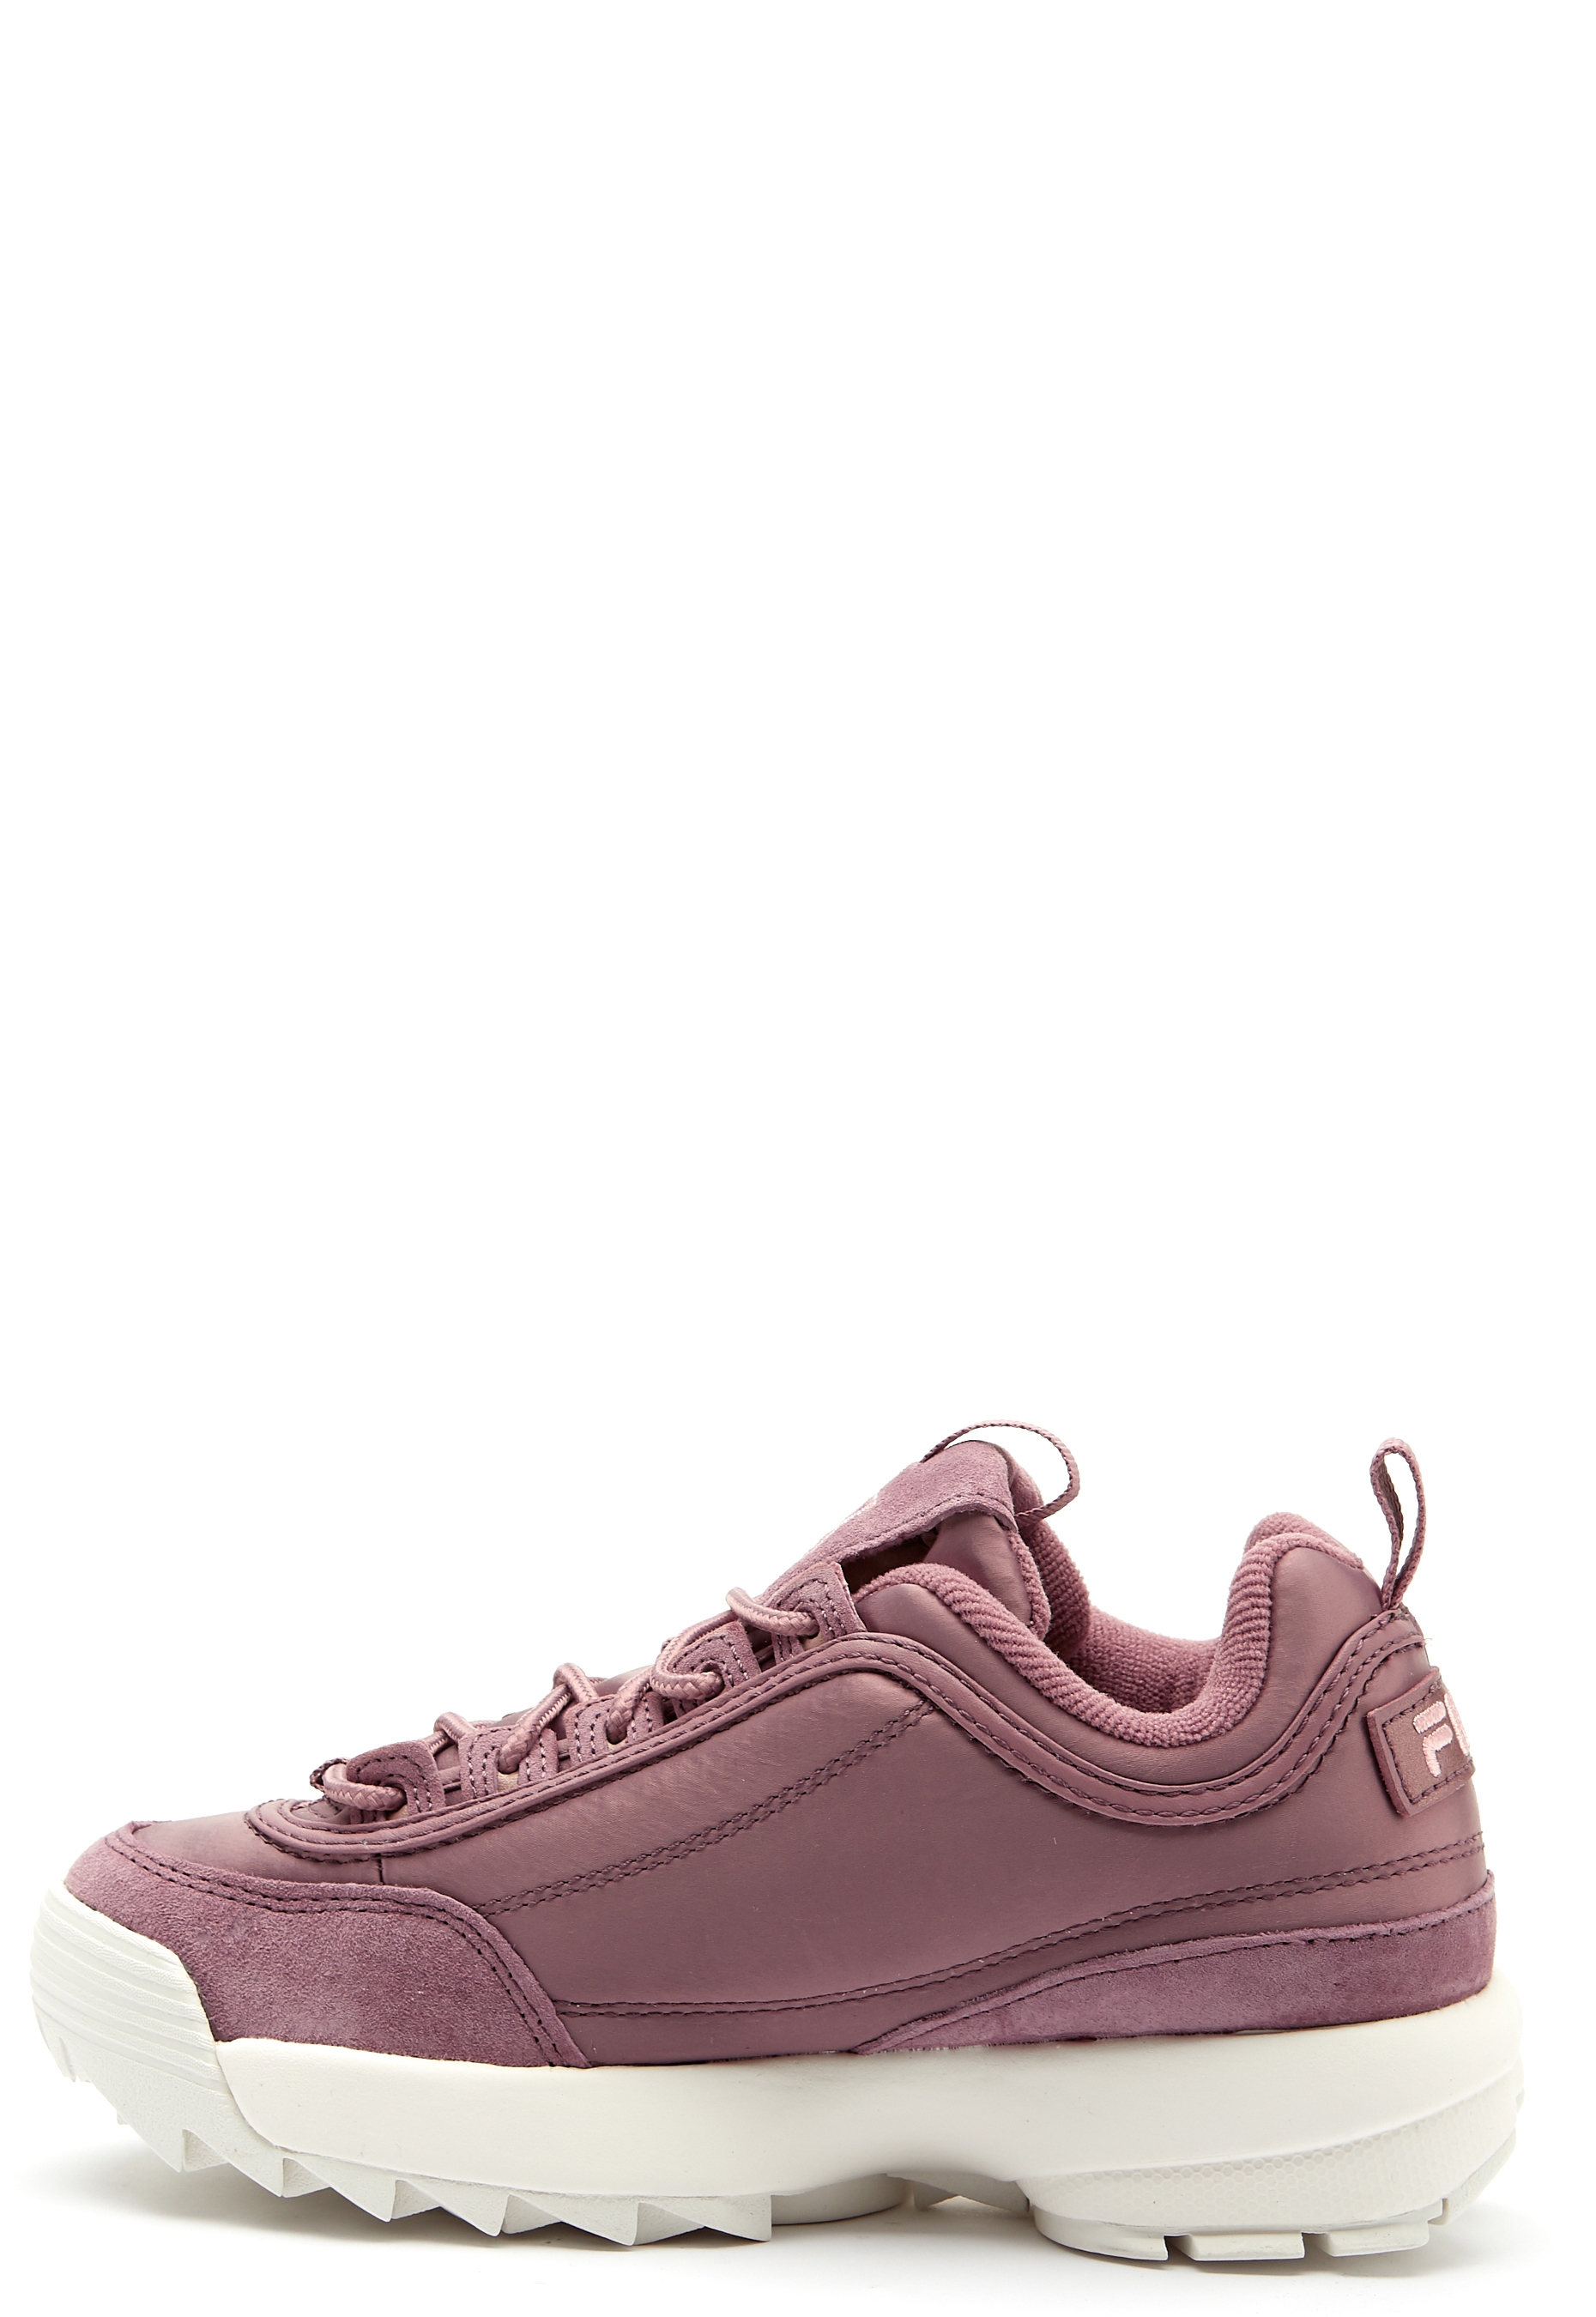 FILA Disruptor Satin Low Boots Ash Rose Bubbleroom